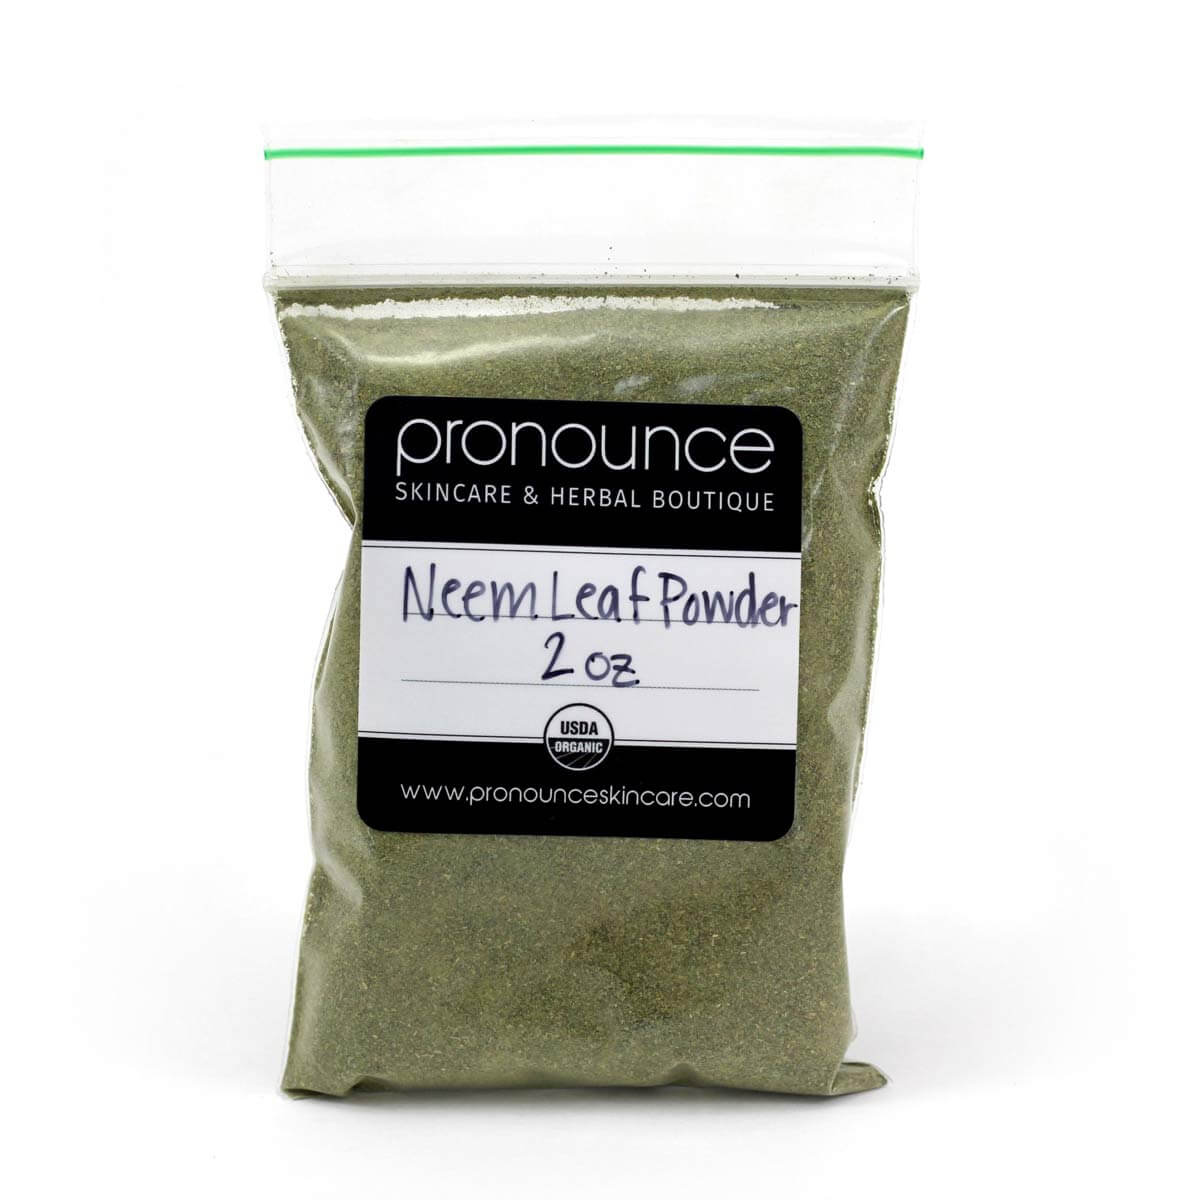 Neem-Leaf-Powder-2oz-Pronounce-Skincare-Herbal-Boutique